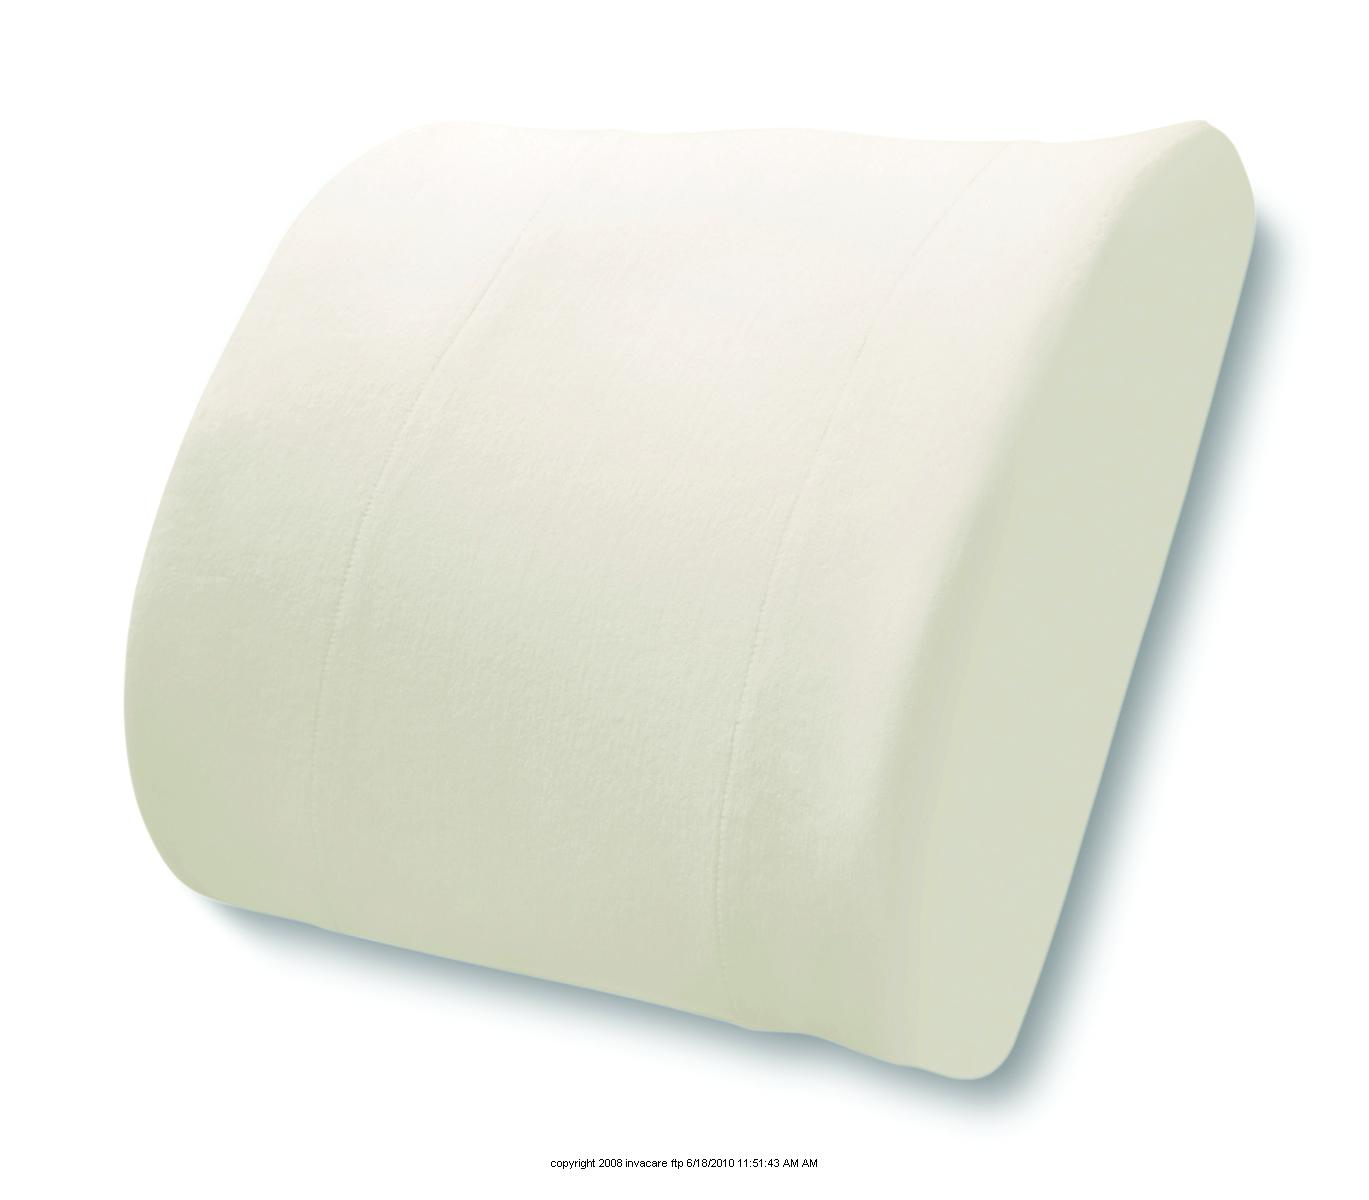 Obusforme Specialty Memory Foam Pillows, The Lumbar Supt Pillow, (1 EACH)